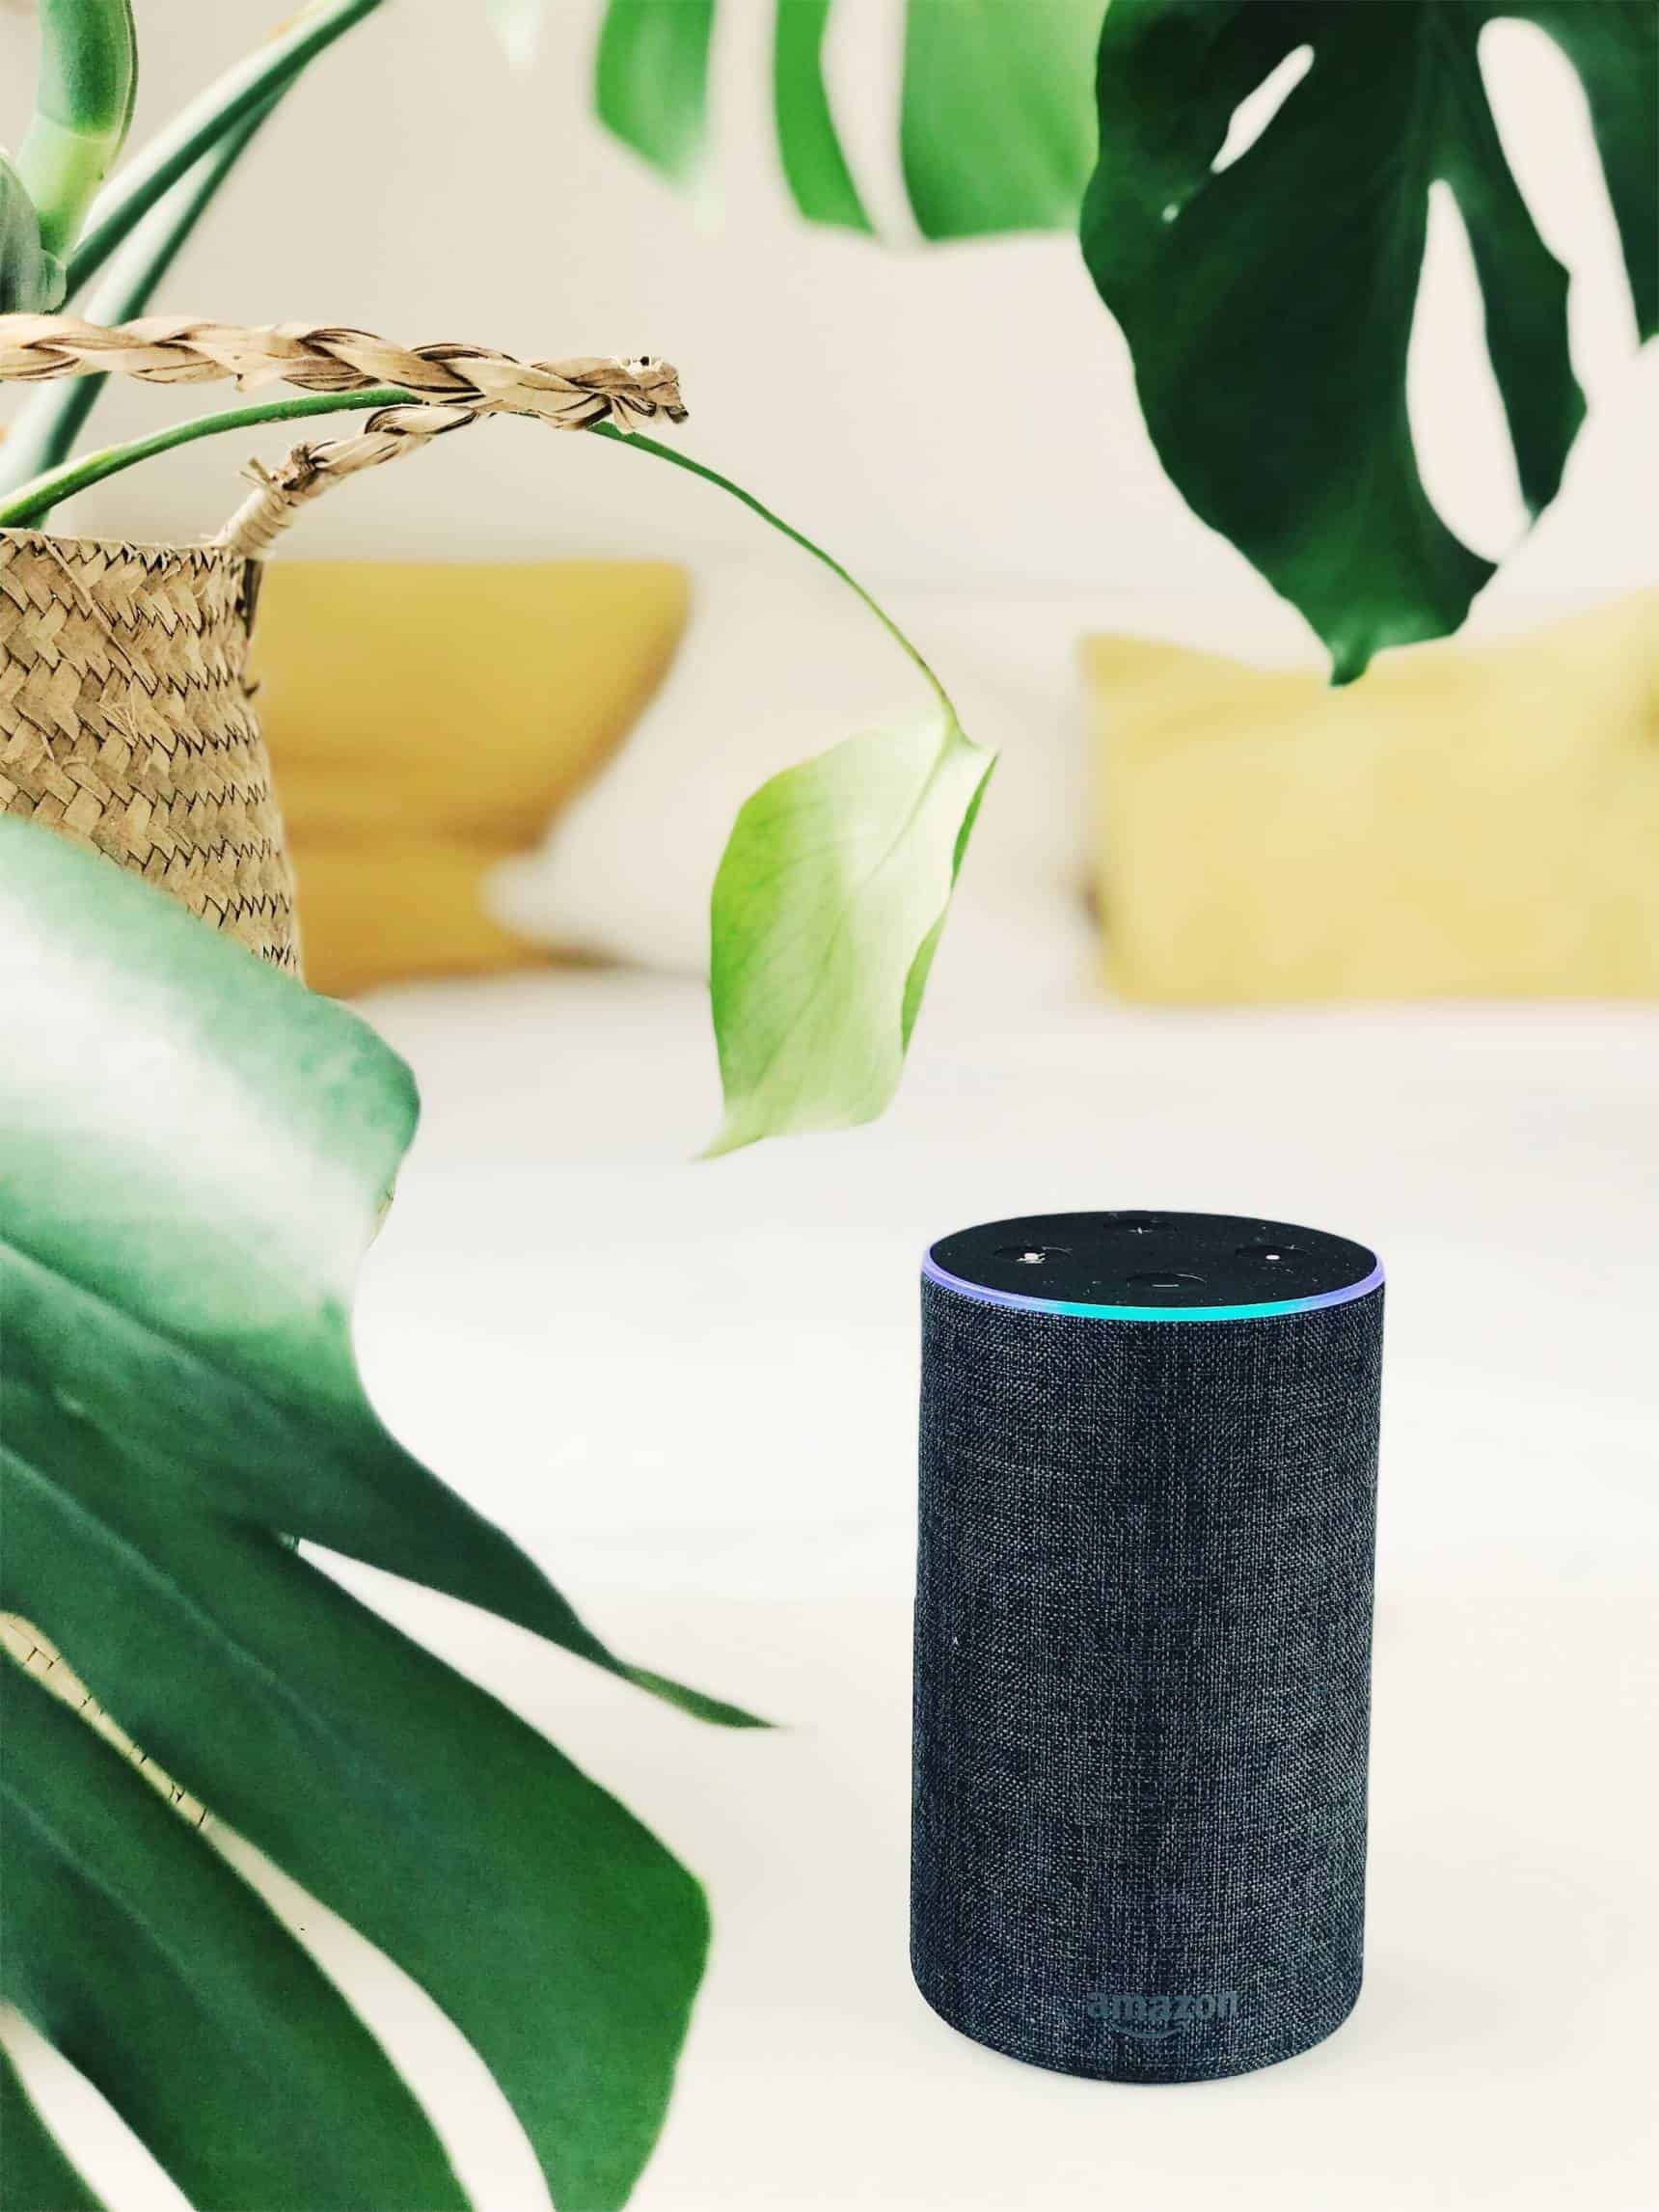 The amazing benefits of Amazon Echo. benefits of Amazon Echo